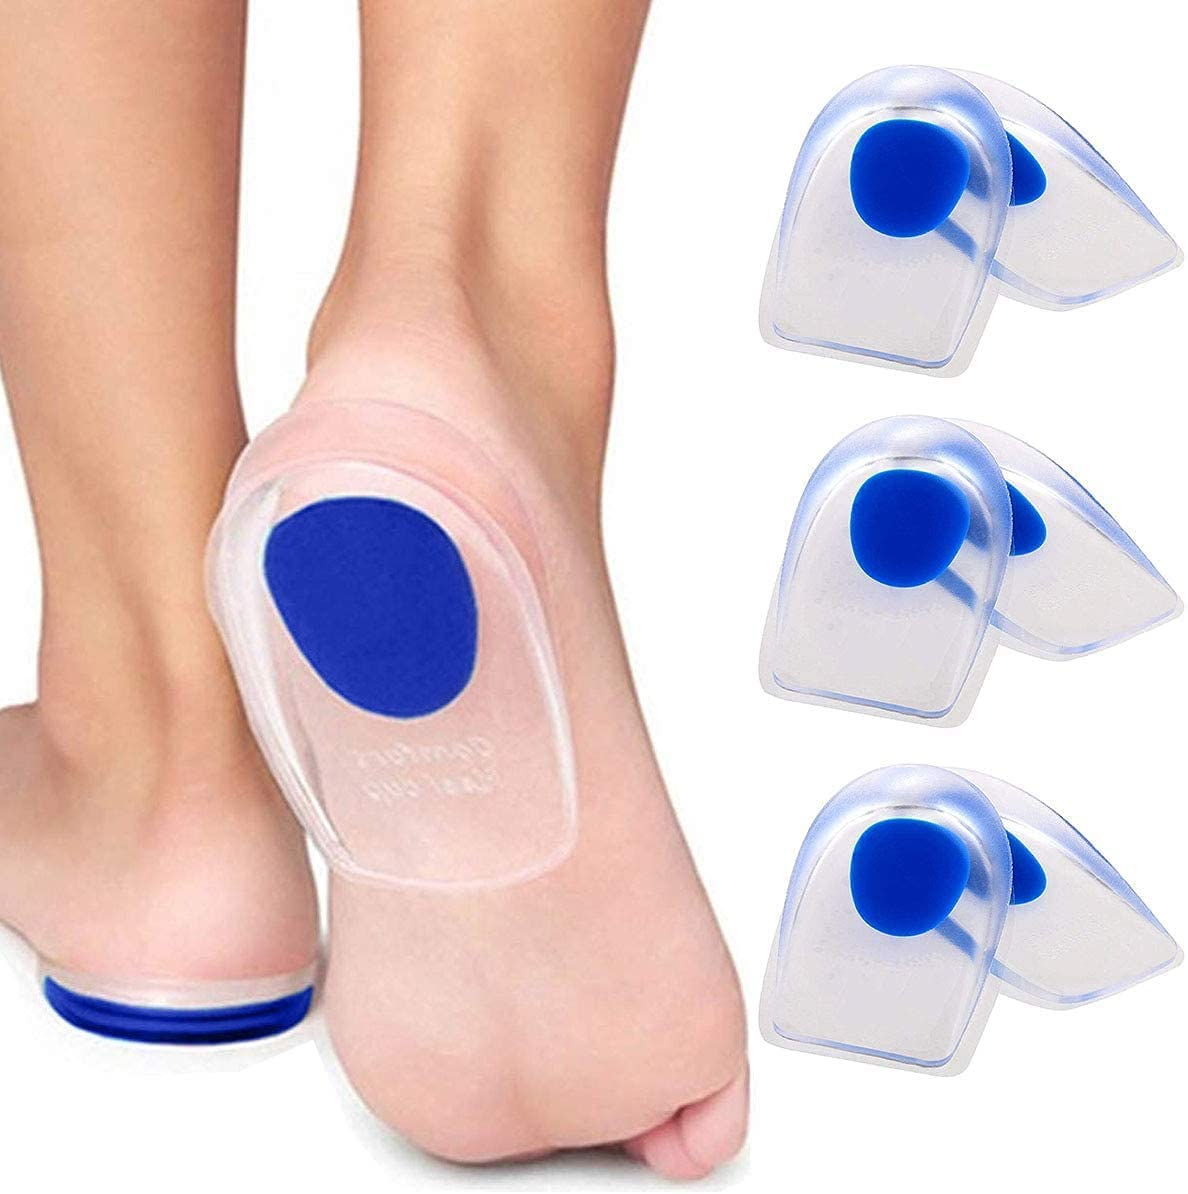 3 Ultra-Cheap Deals Pair Gel Heel Cups Plantar Silicone Large special price !! Fasciitis - Inserts He